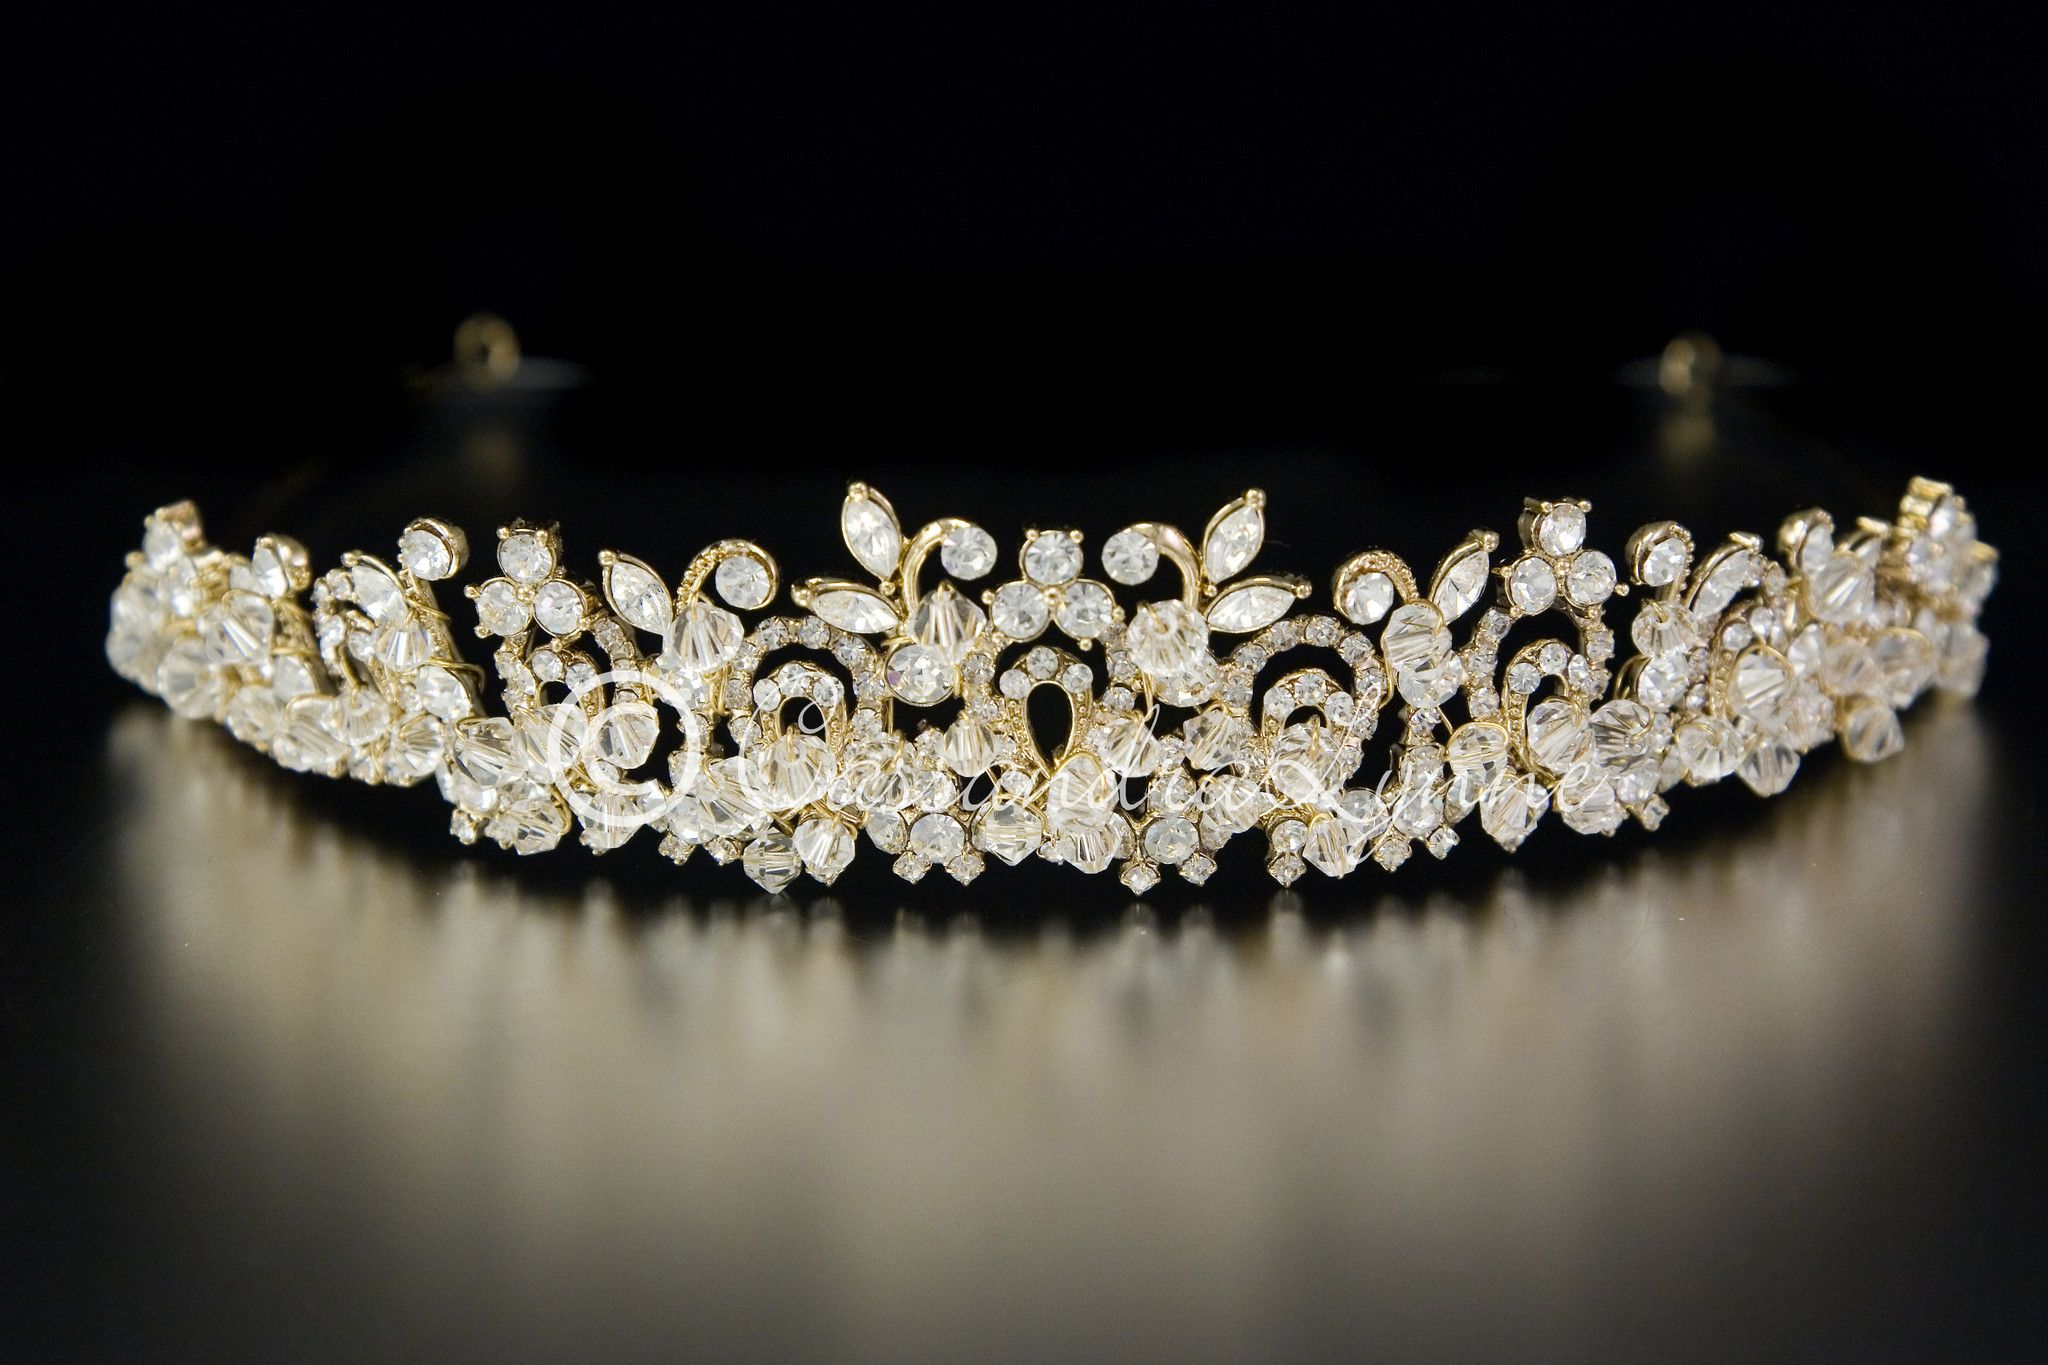 swarovski crystal wedding tiara with rhinestones in 14k gold